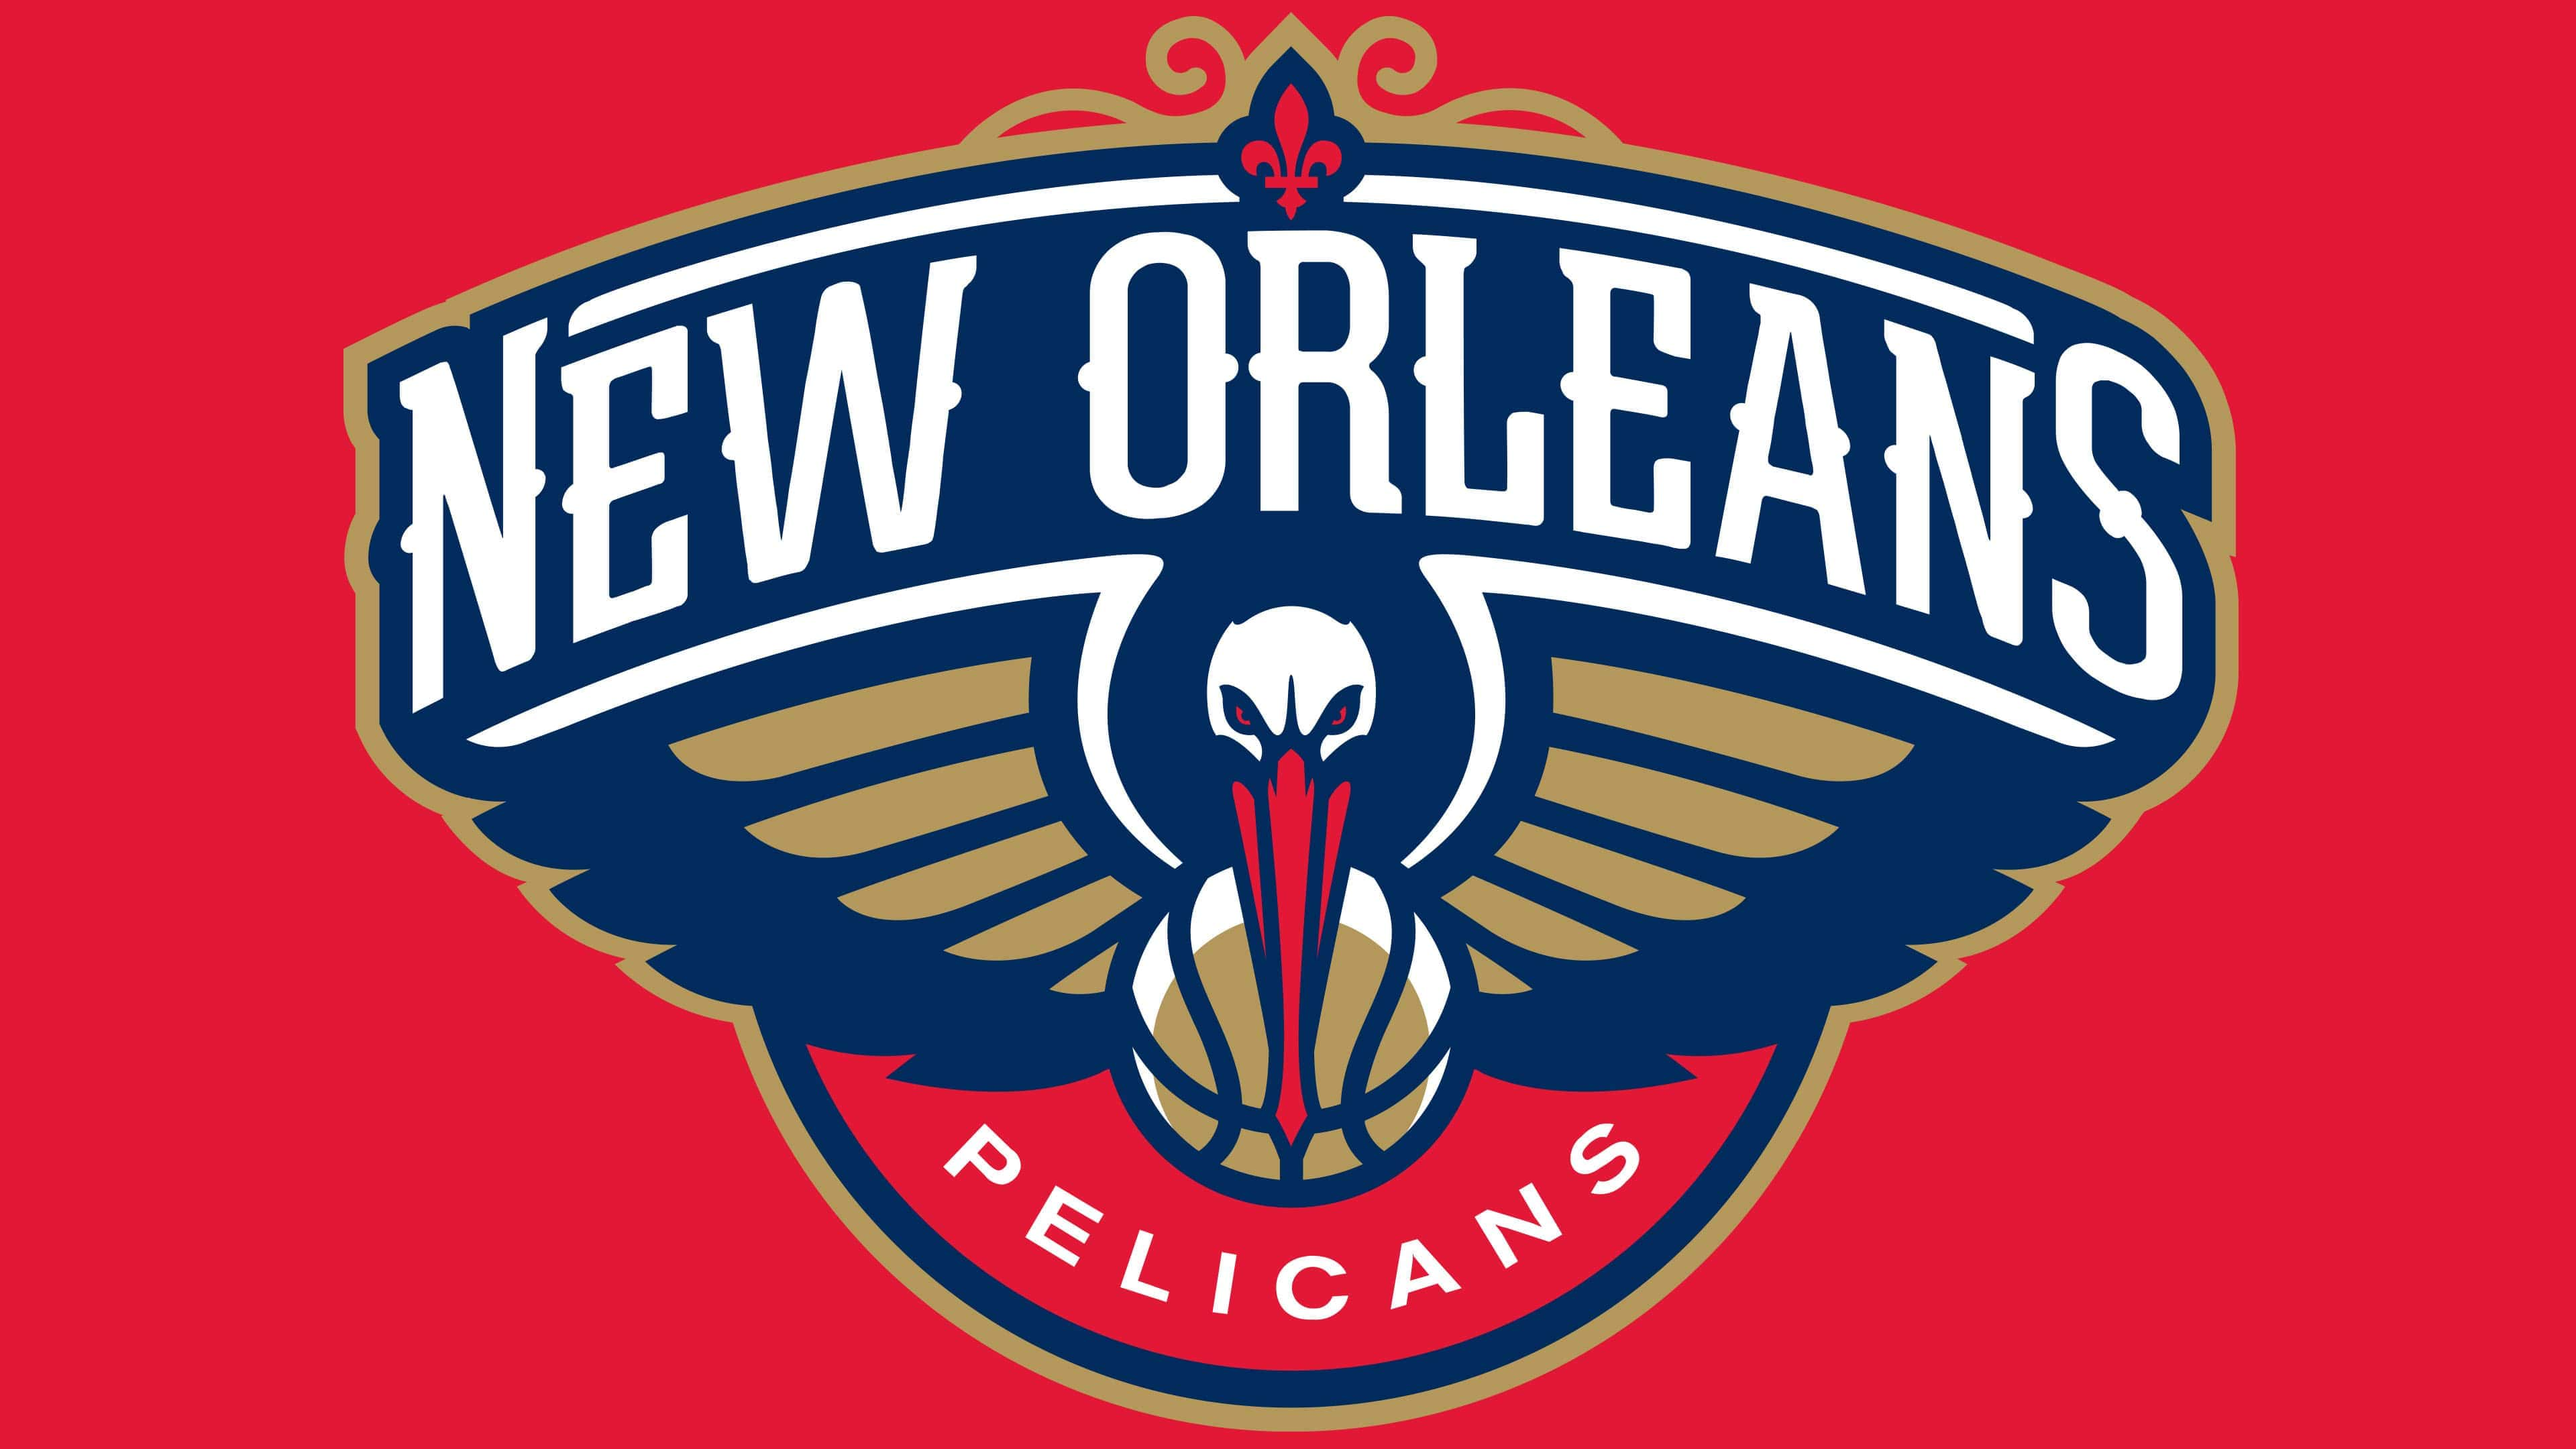 New Orleans Pelicans Logo The Most Famous Brands And Company Logos In The World